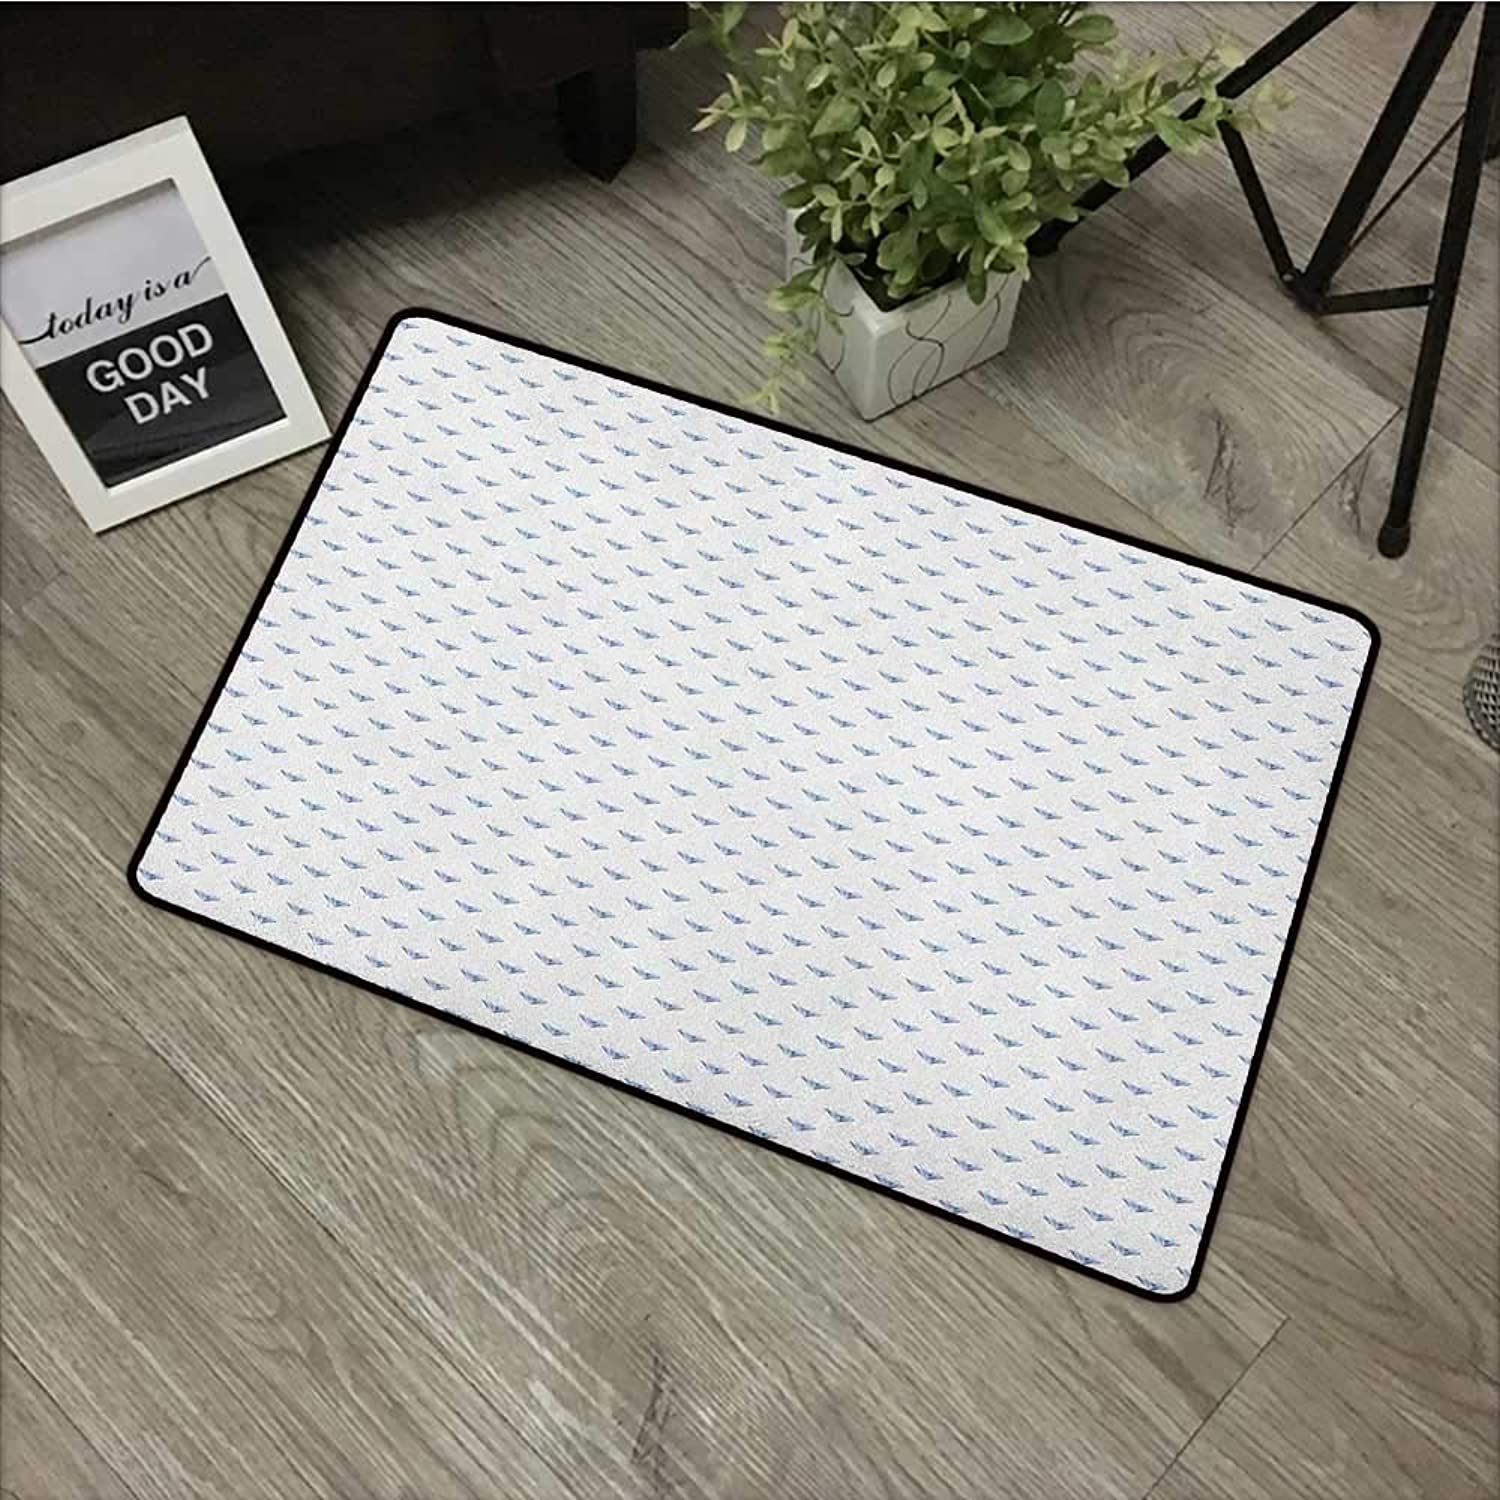 Living Room Door mat W35 x L59 INCH Diamonds,Geometrical Design Rhombuses and Lines on The Collection of Natural Rocks, Baby bluee White Non-Slip Door Mat Carpet